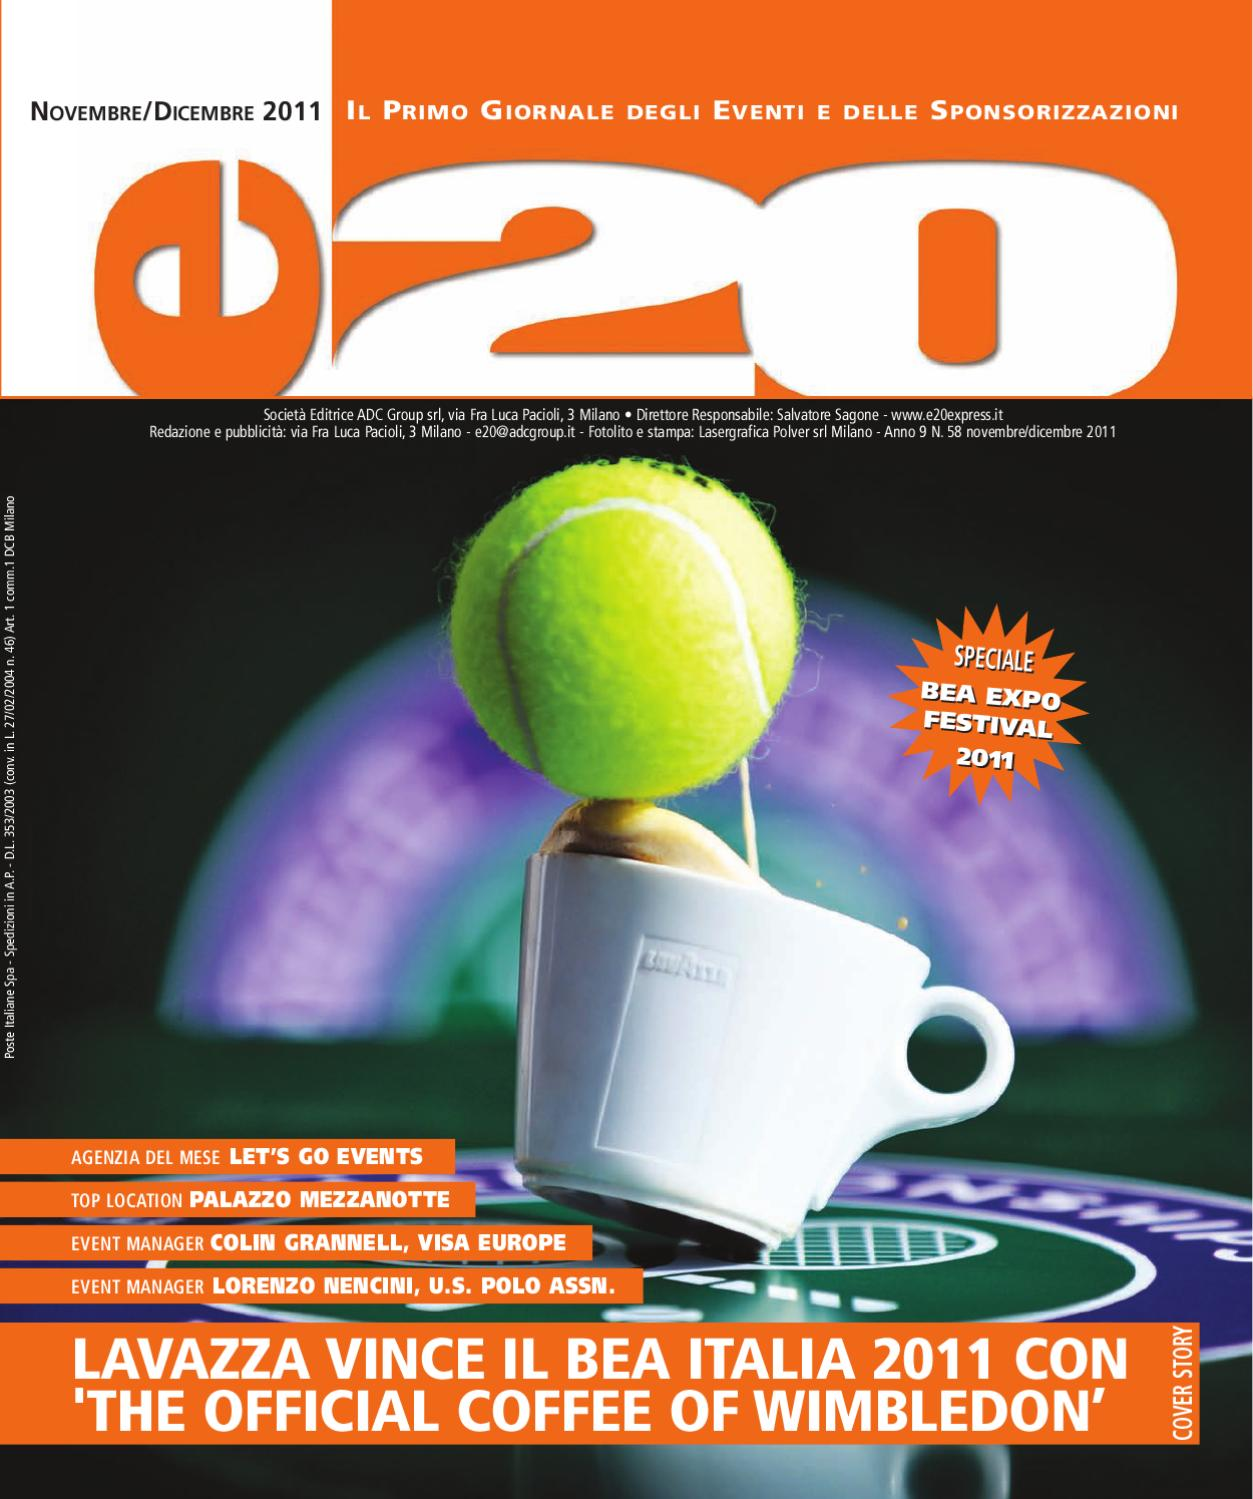 E20 Nov 2011 By Adc dic Issuu Group 9IEDH2